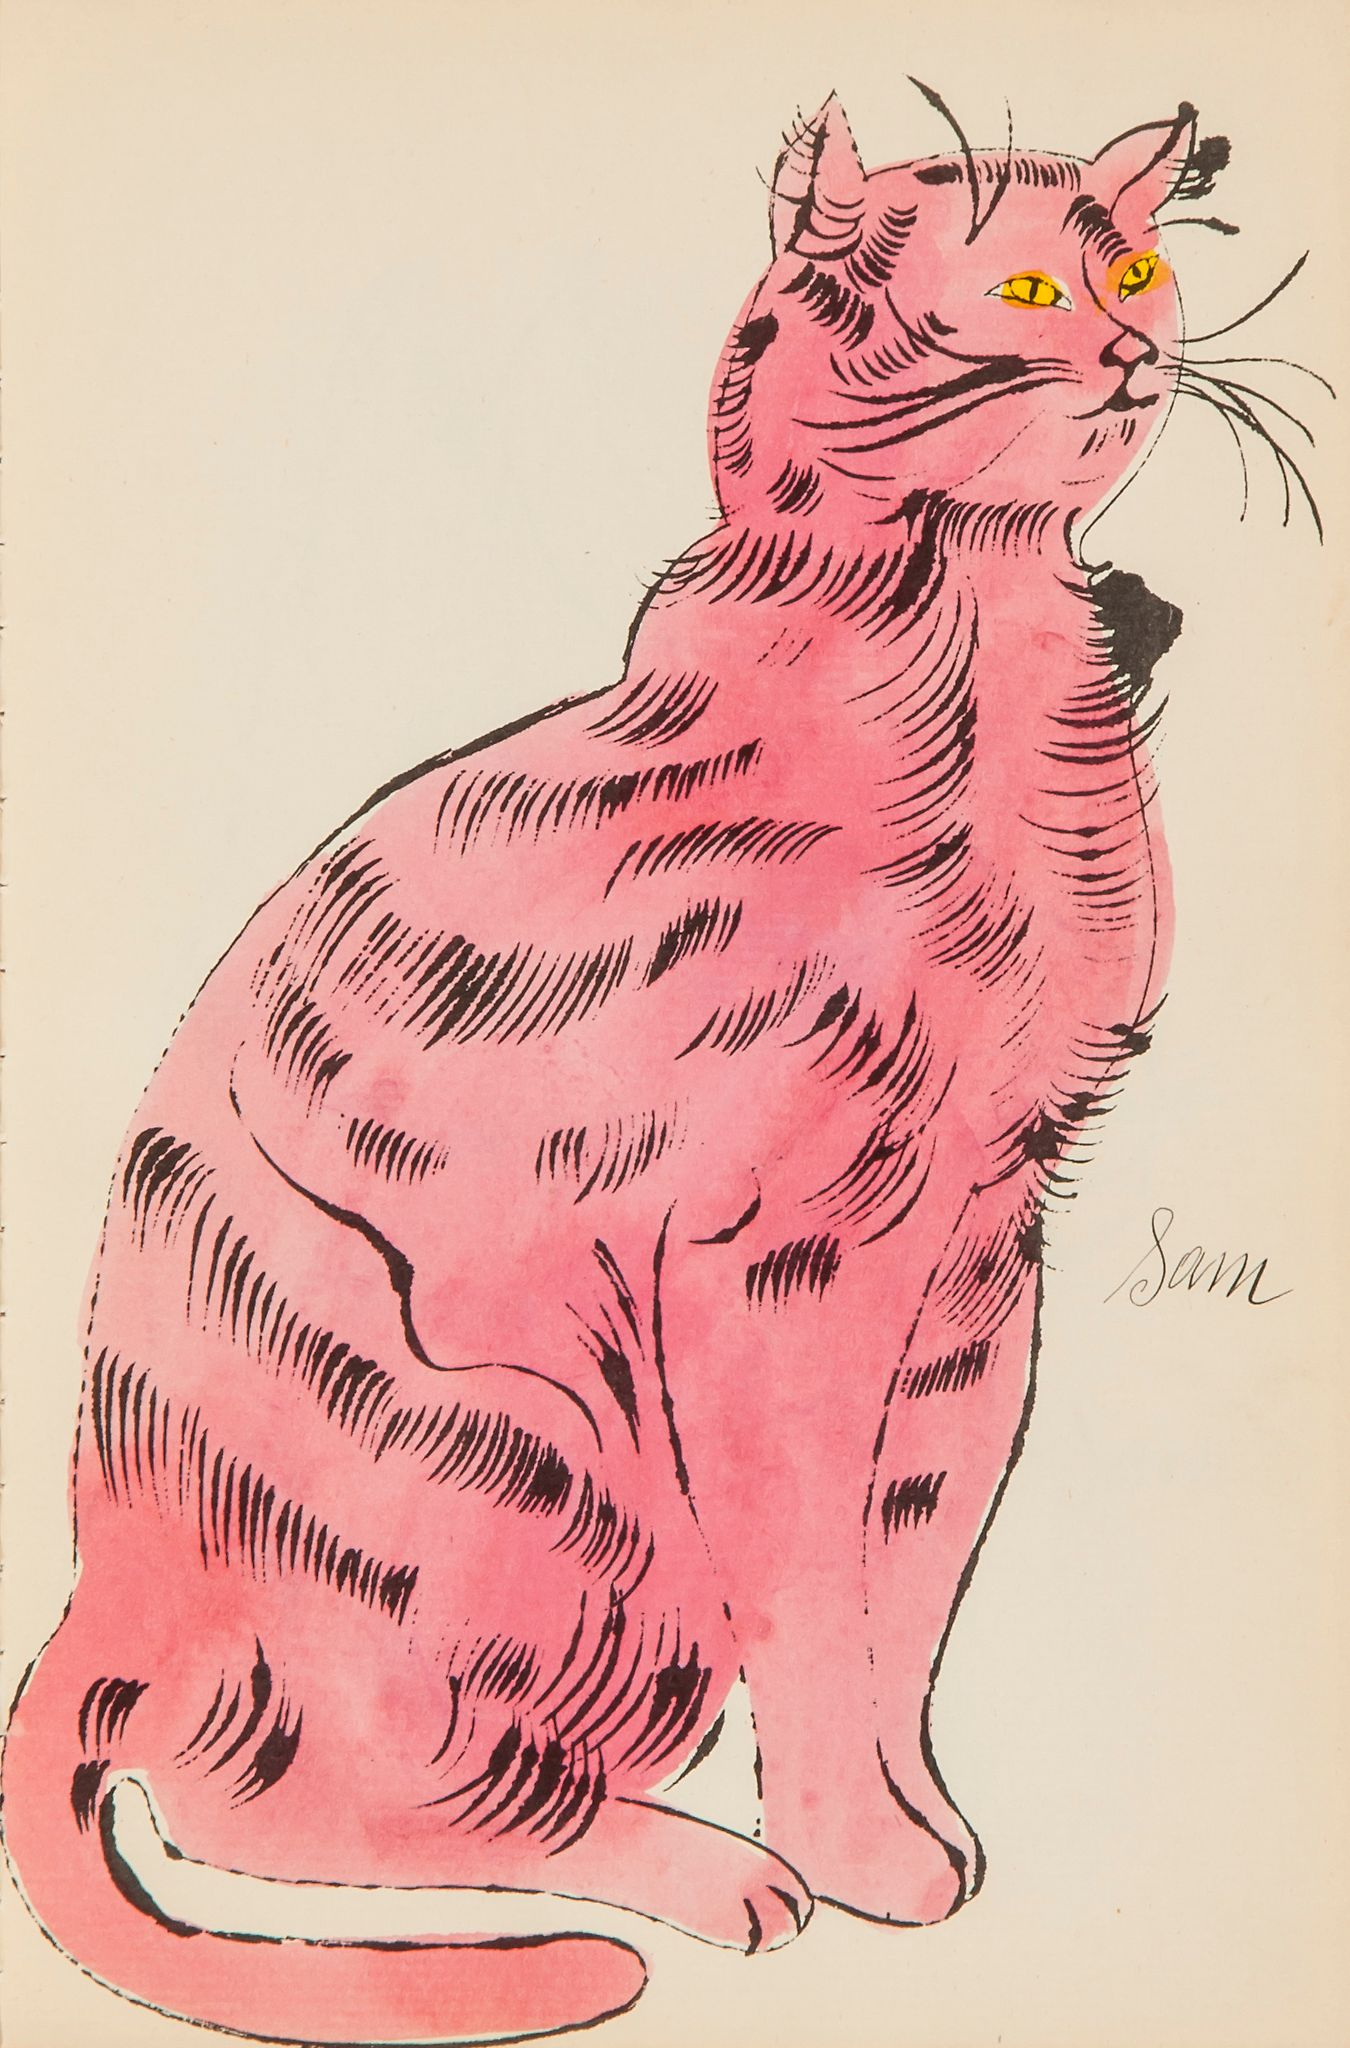 Cats Named Sam IV.56 by Andy Warhol